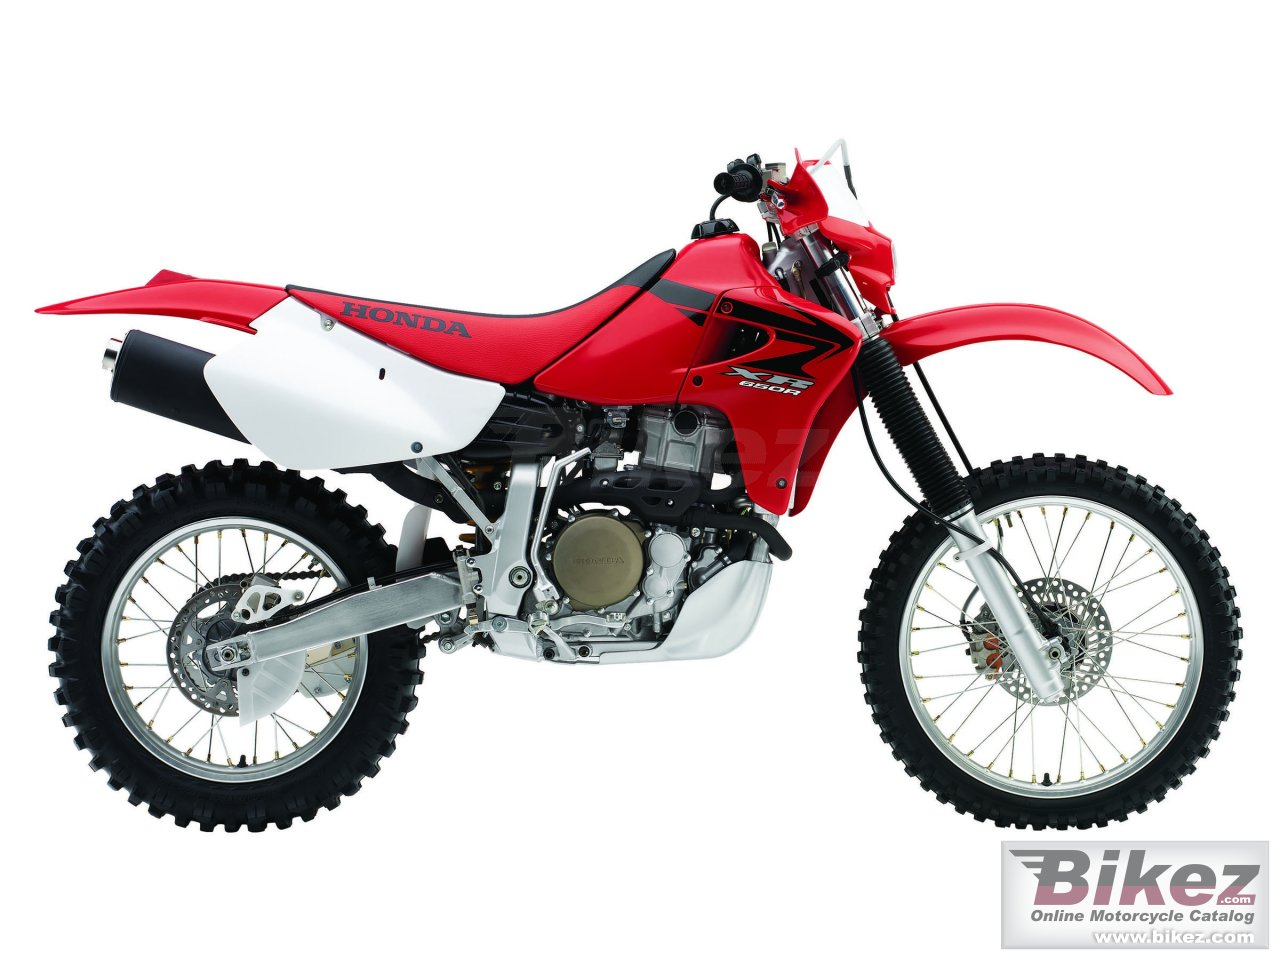 Big Honda xr 650 r picture and wallpaper from Bikez.com